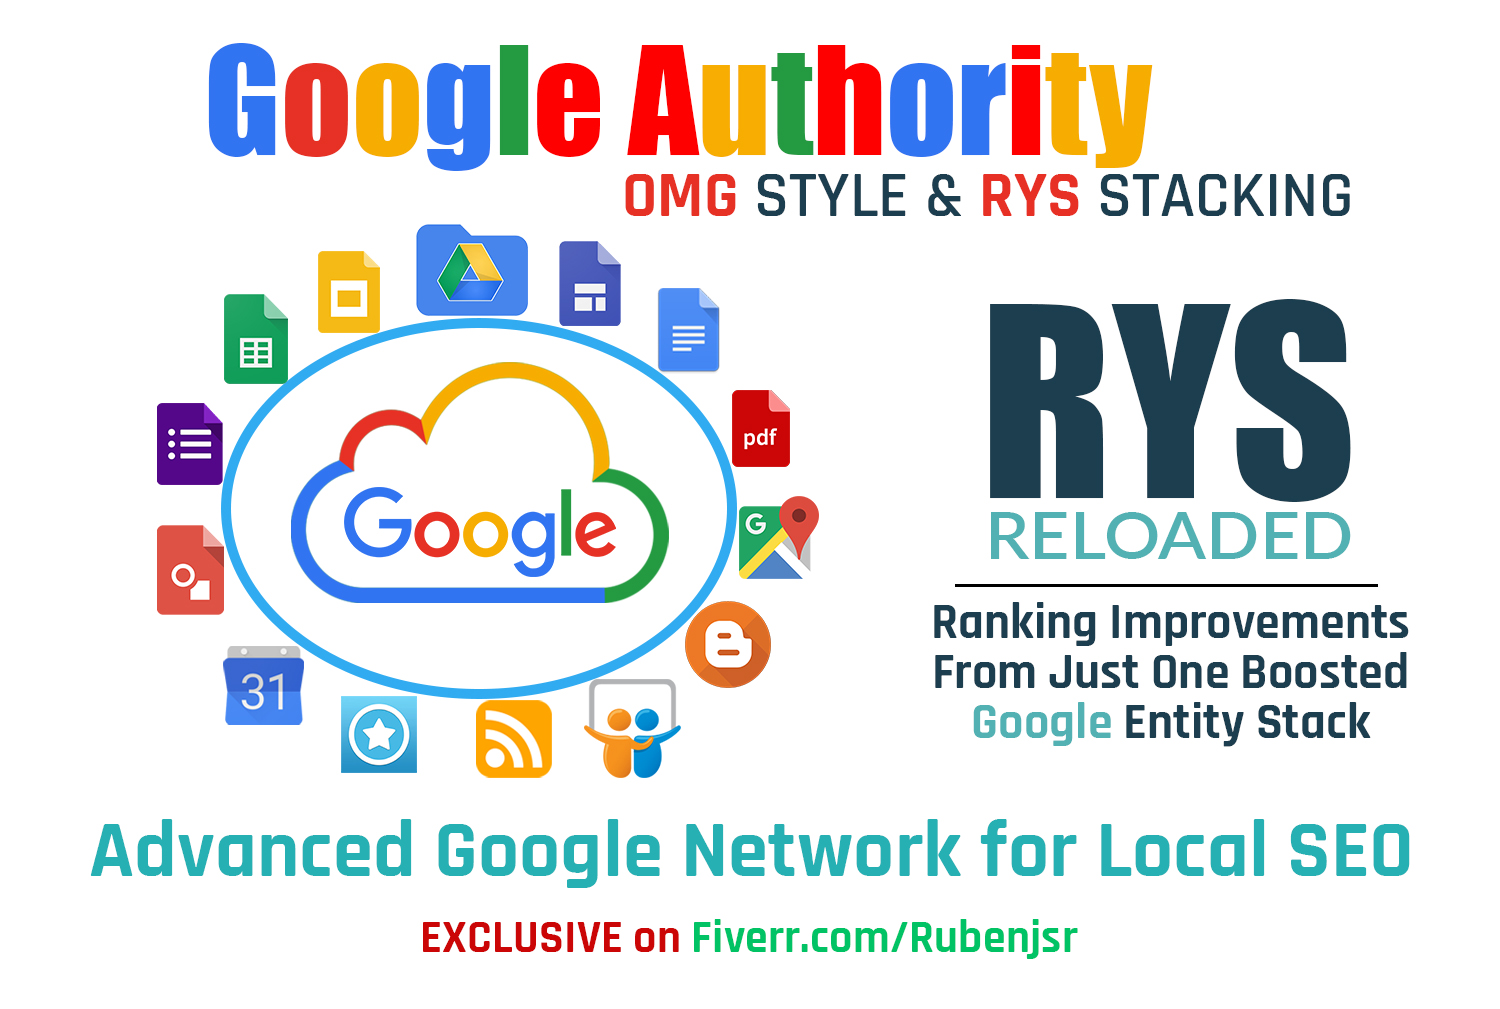 Create Google Authority Backlinks Omg And Rys Stack